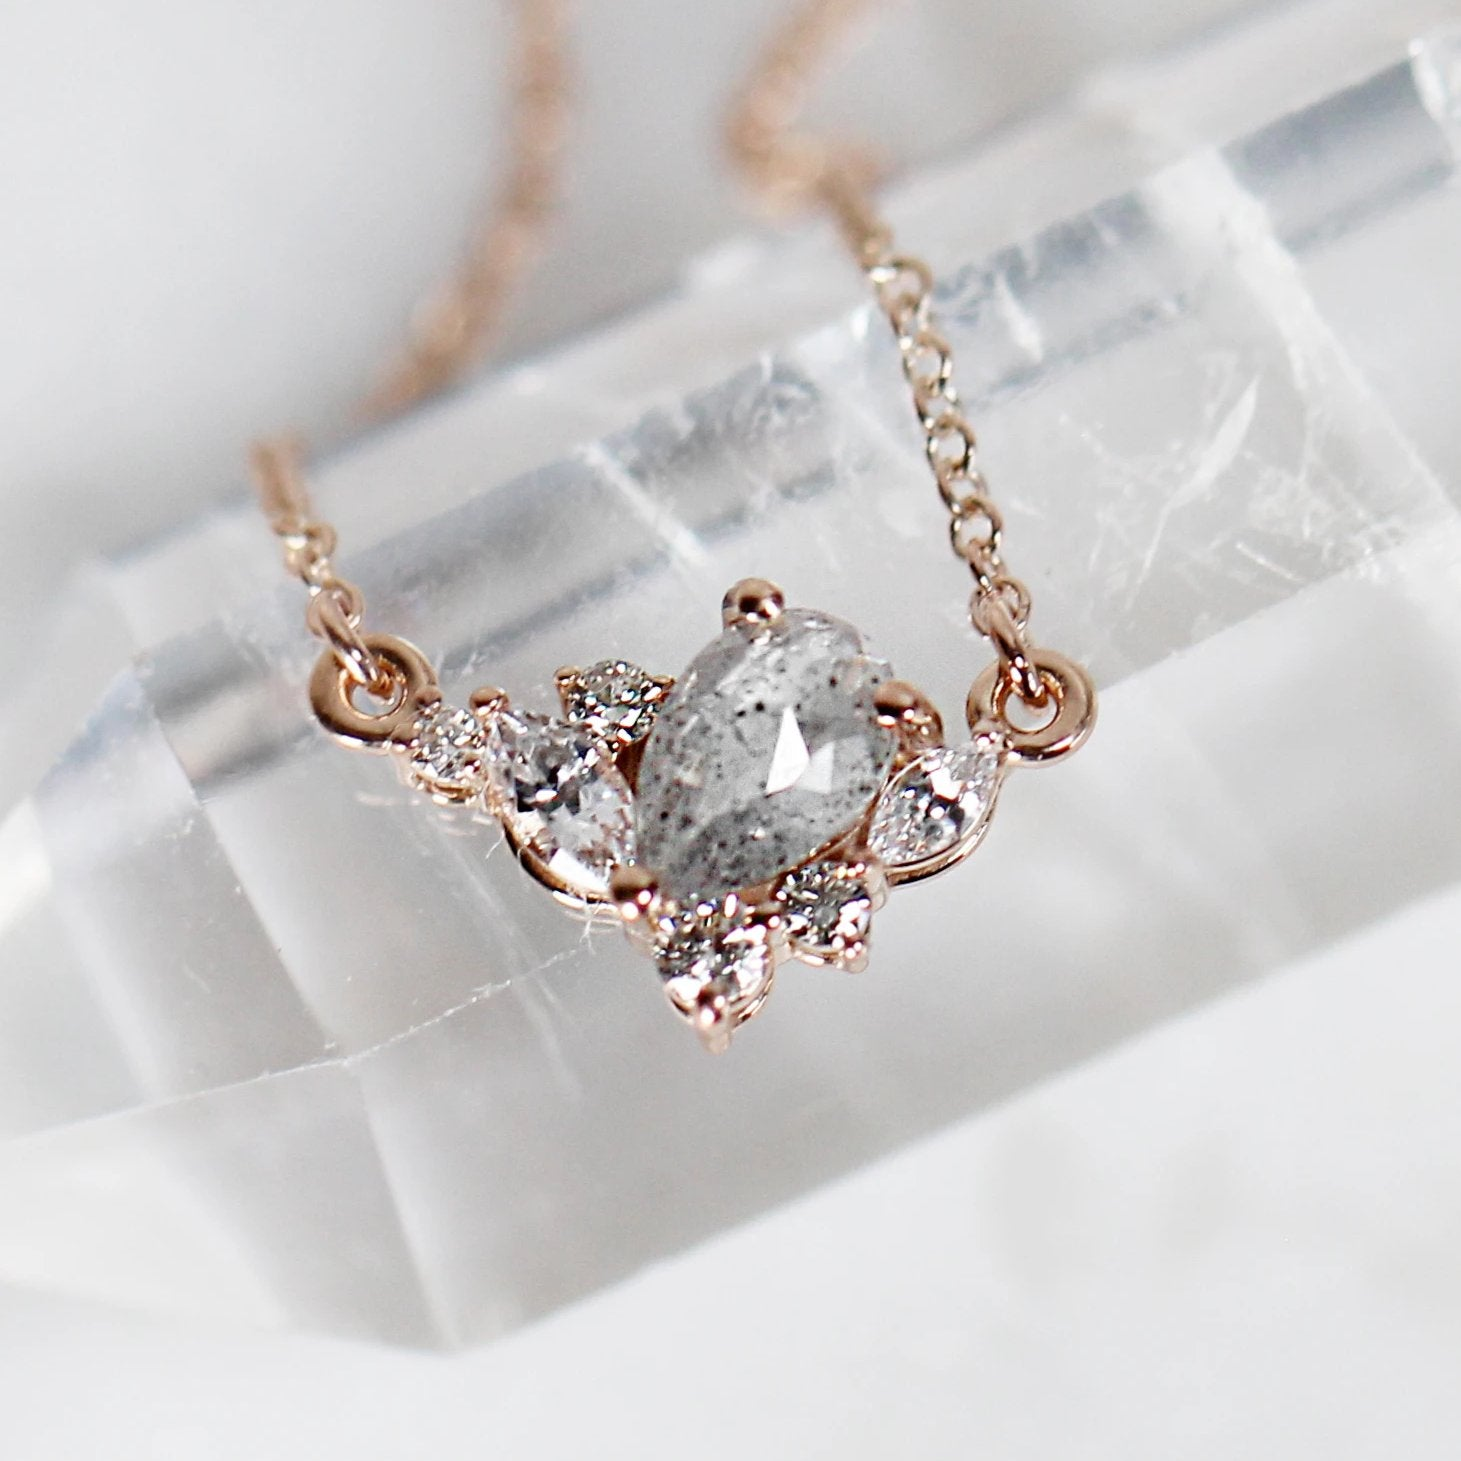 Carrie Cluster Necklace with white diamonds in 14k Rose Gold - Salt & Pepper Celestial Diamond Engagement Rings and Wedding Bands  by Midwinter Co.